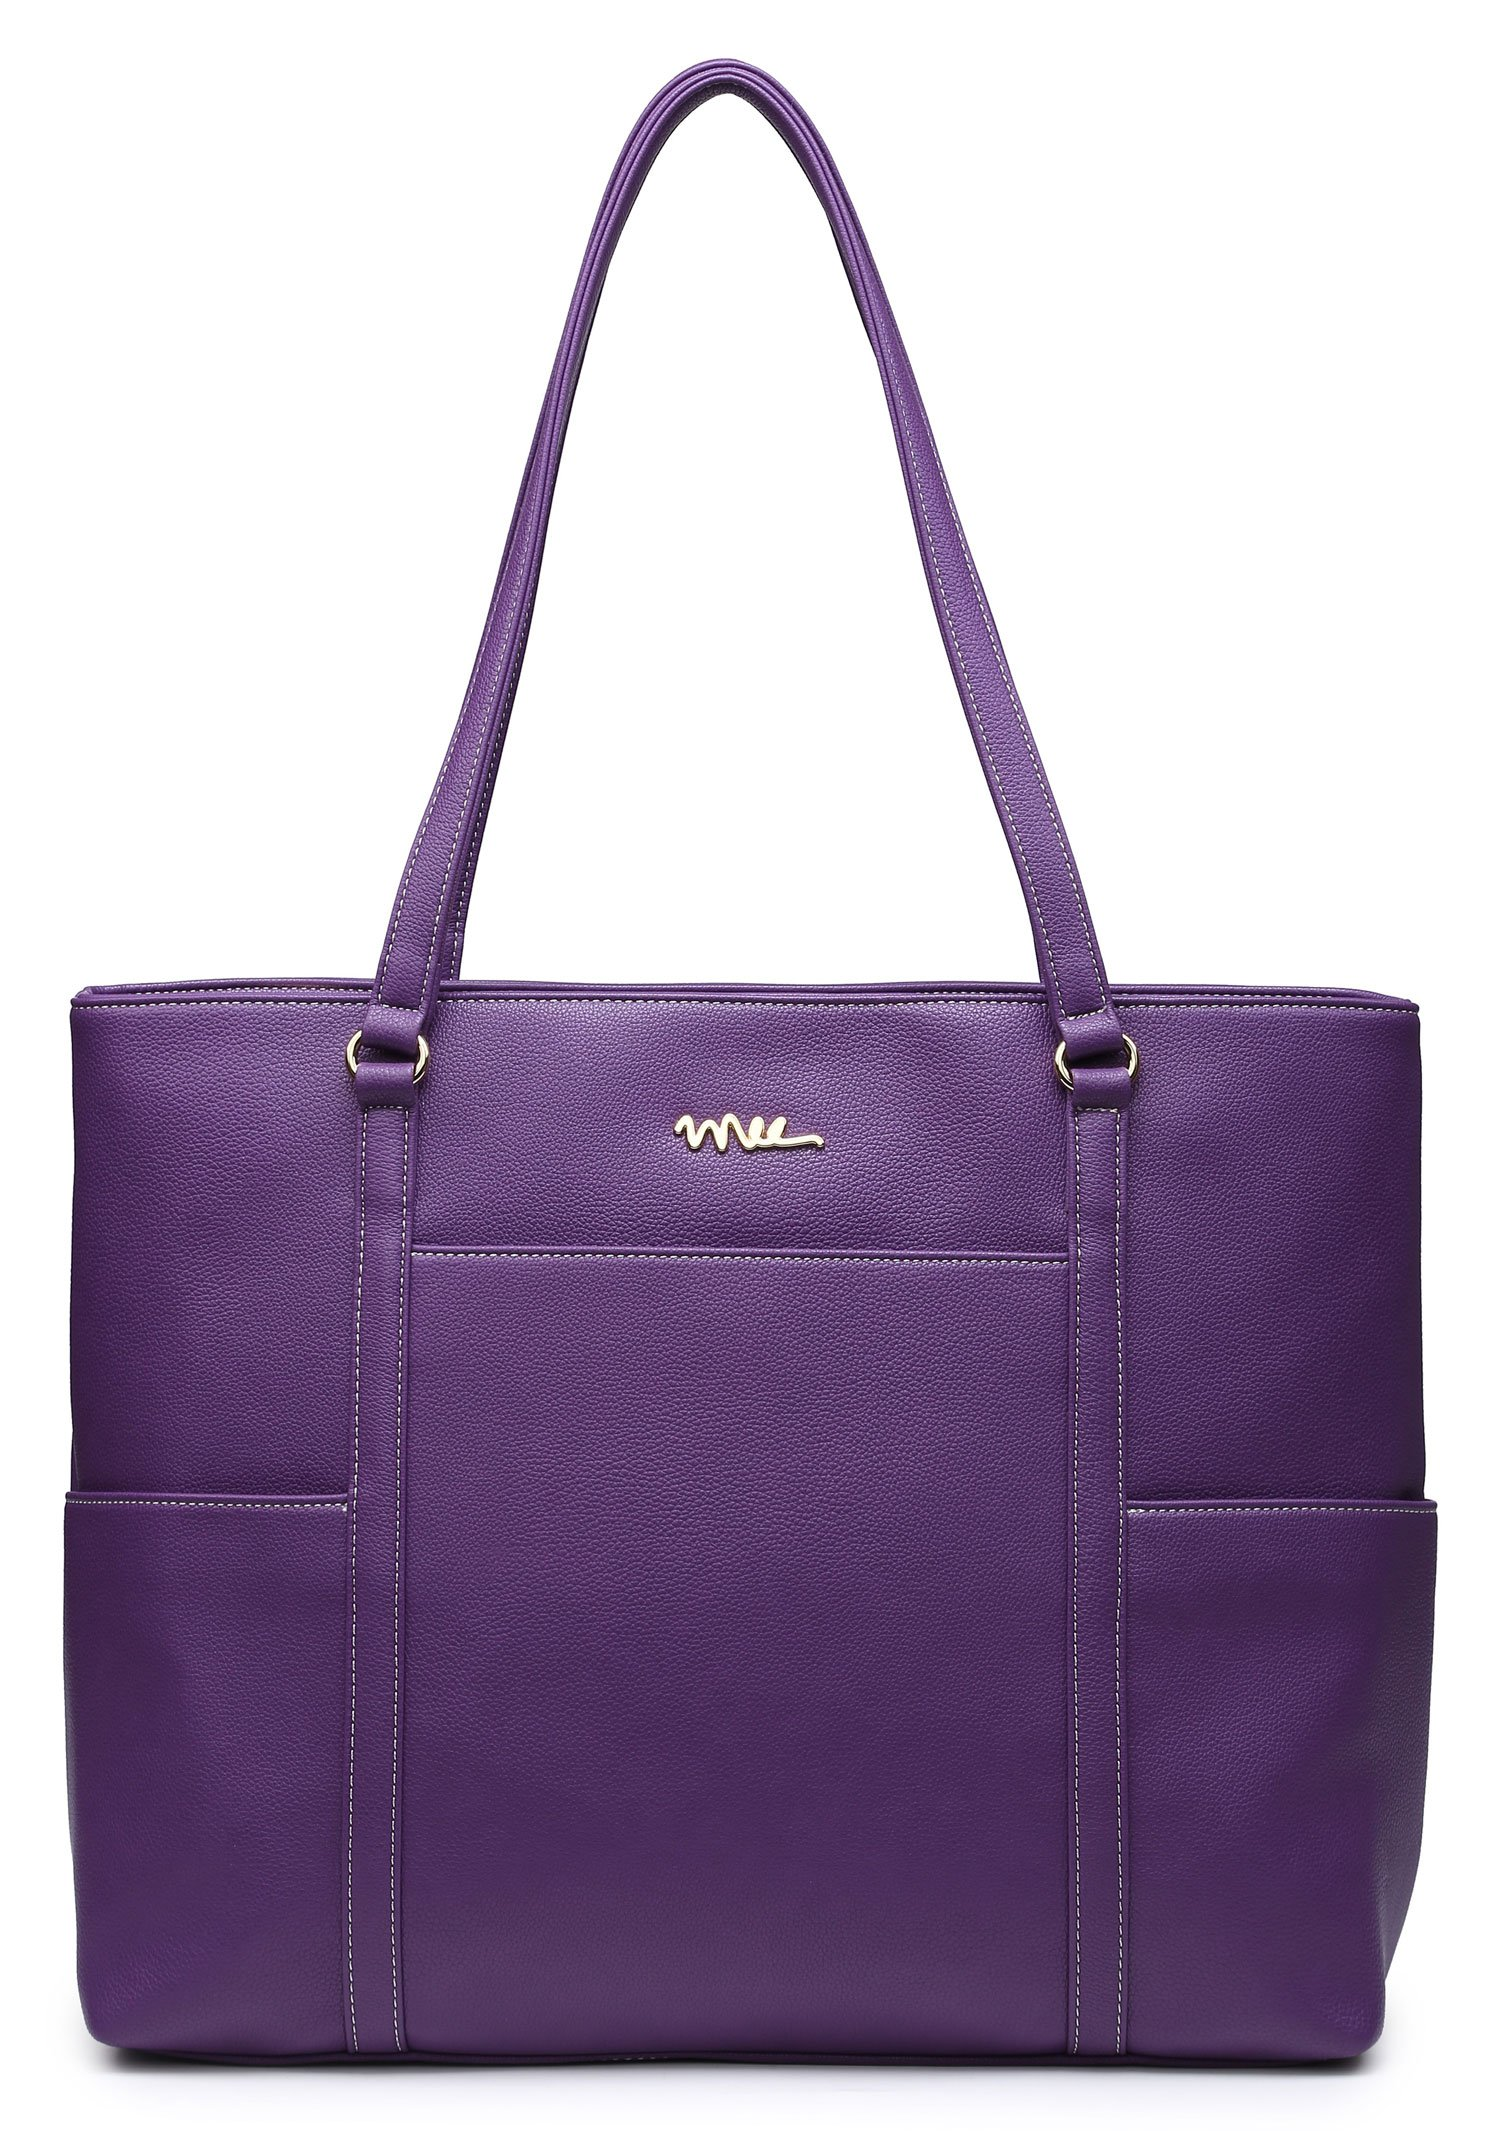 NNEE Classic Laptop Leather Tote Bag for 15 15.6 inch Notebook Computers Travel Carrying Bag with Smart Trolley Strap Design - Purple